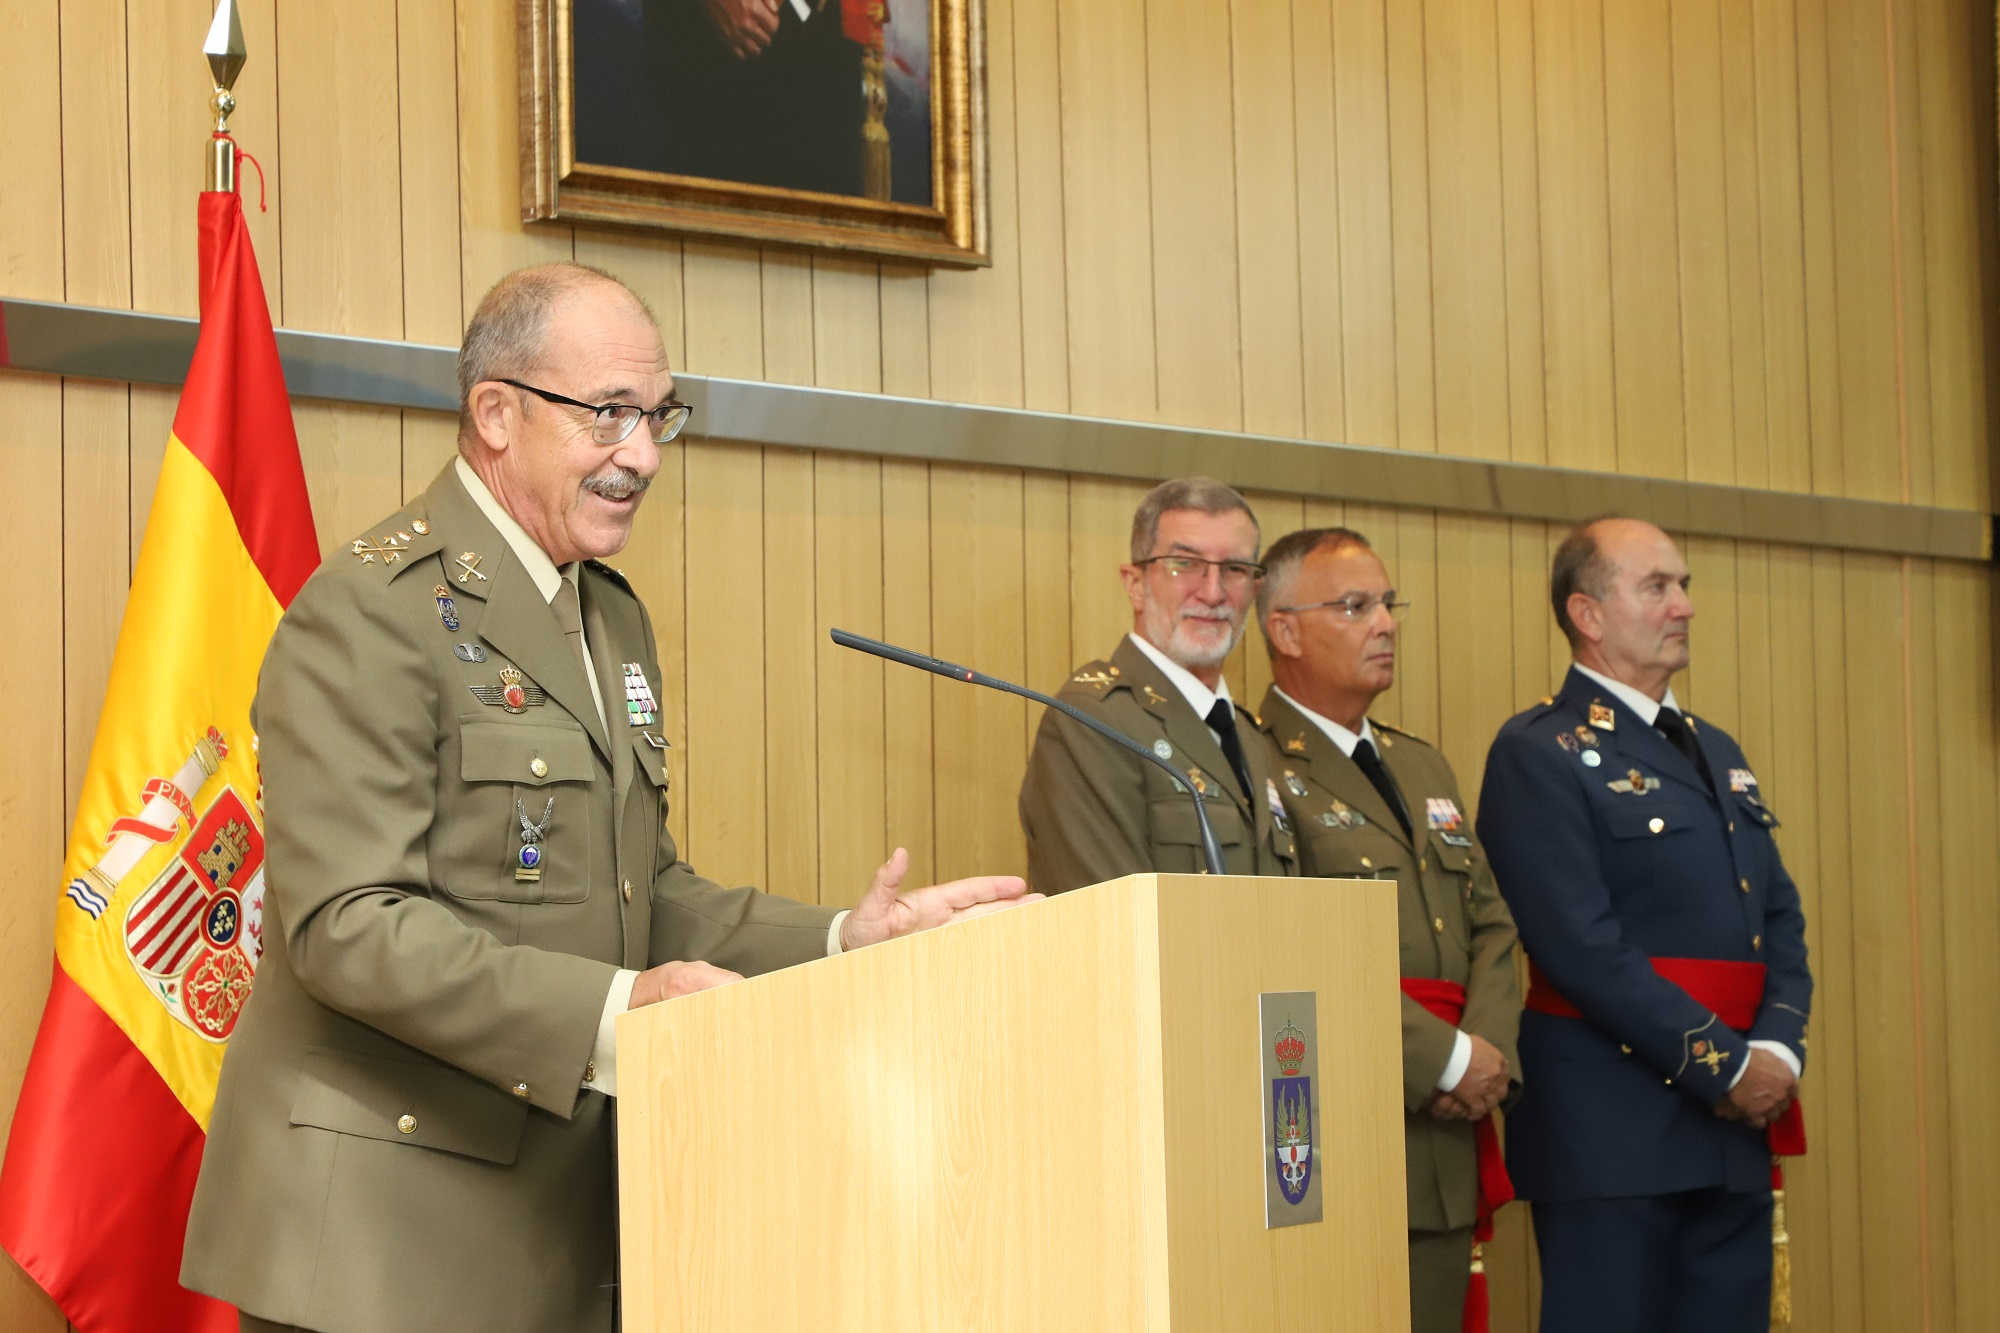 Major General Antonio Romero takes command as Director of the Spanish Armed Forces Intelligence Centre